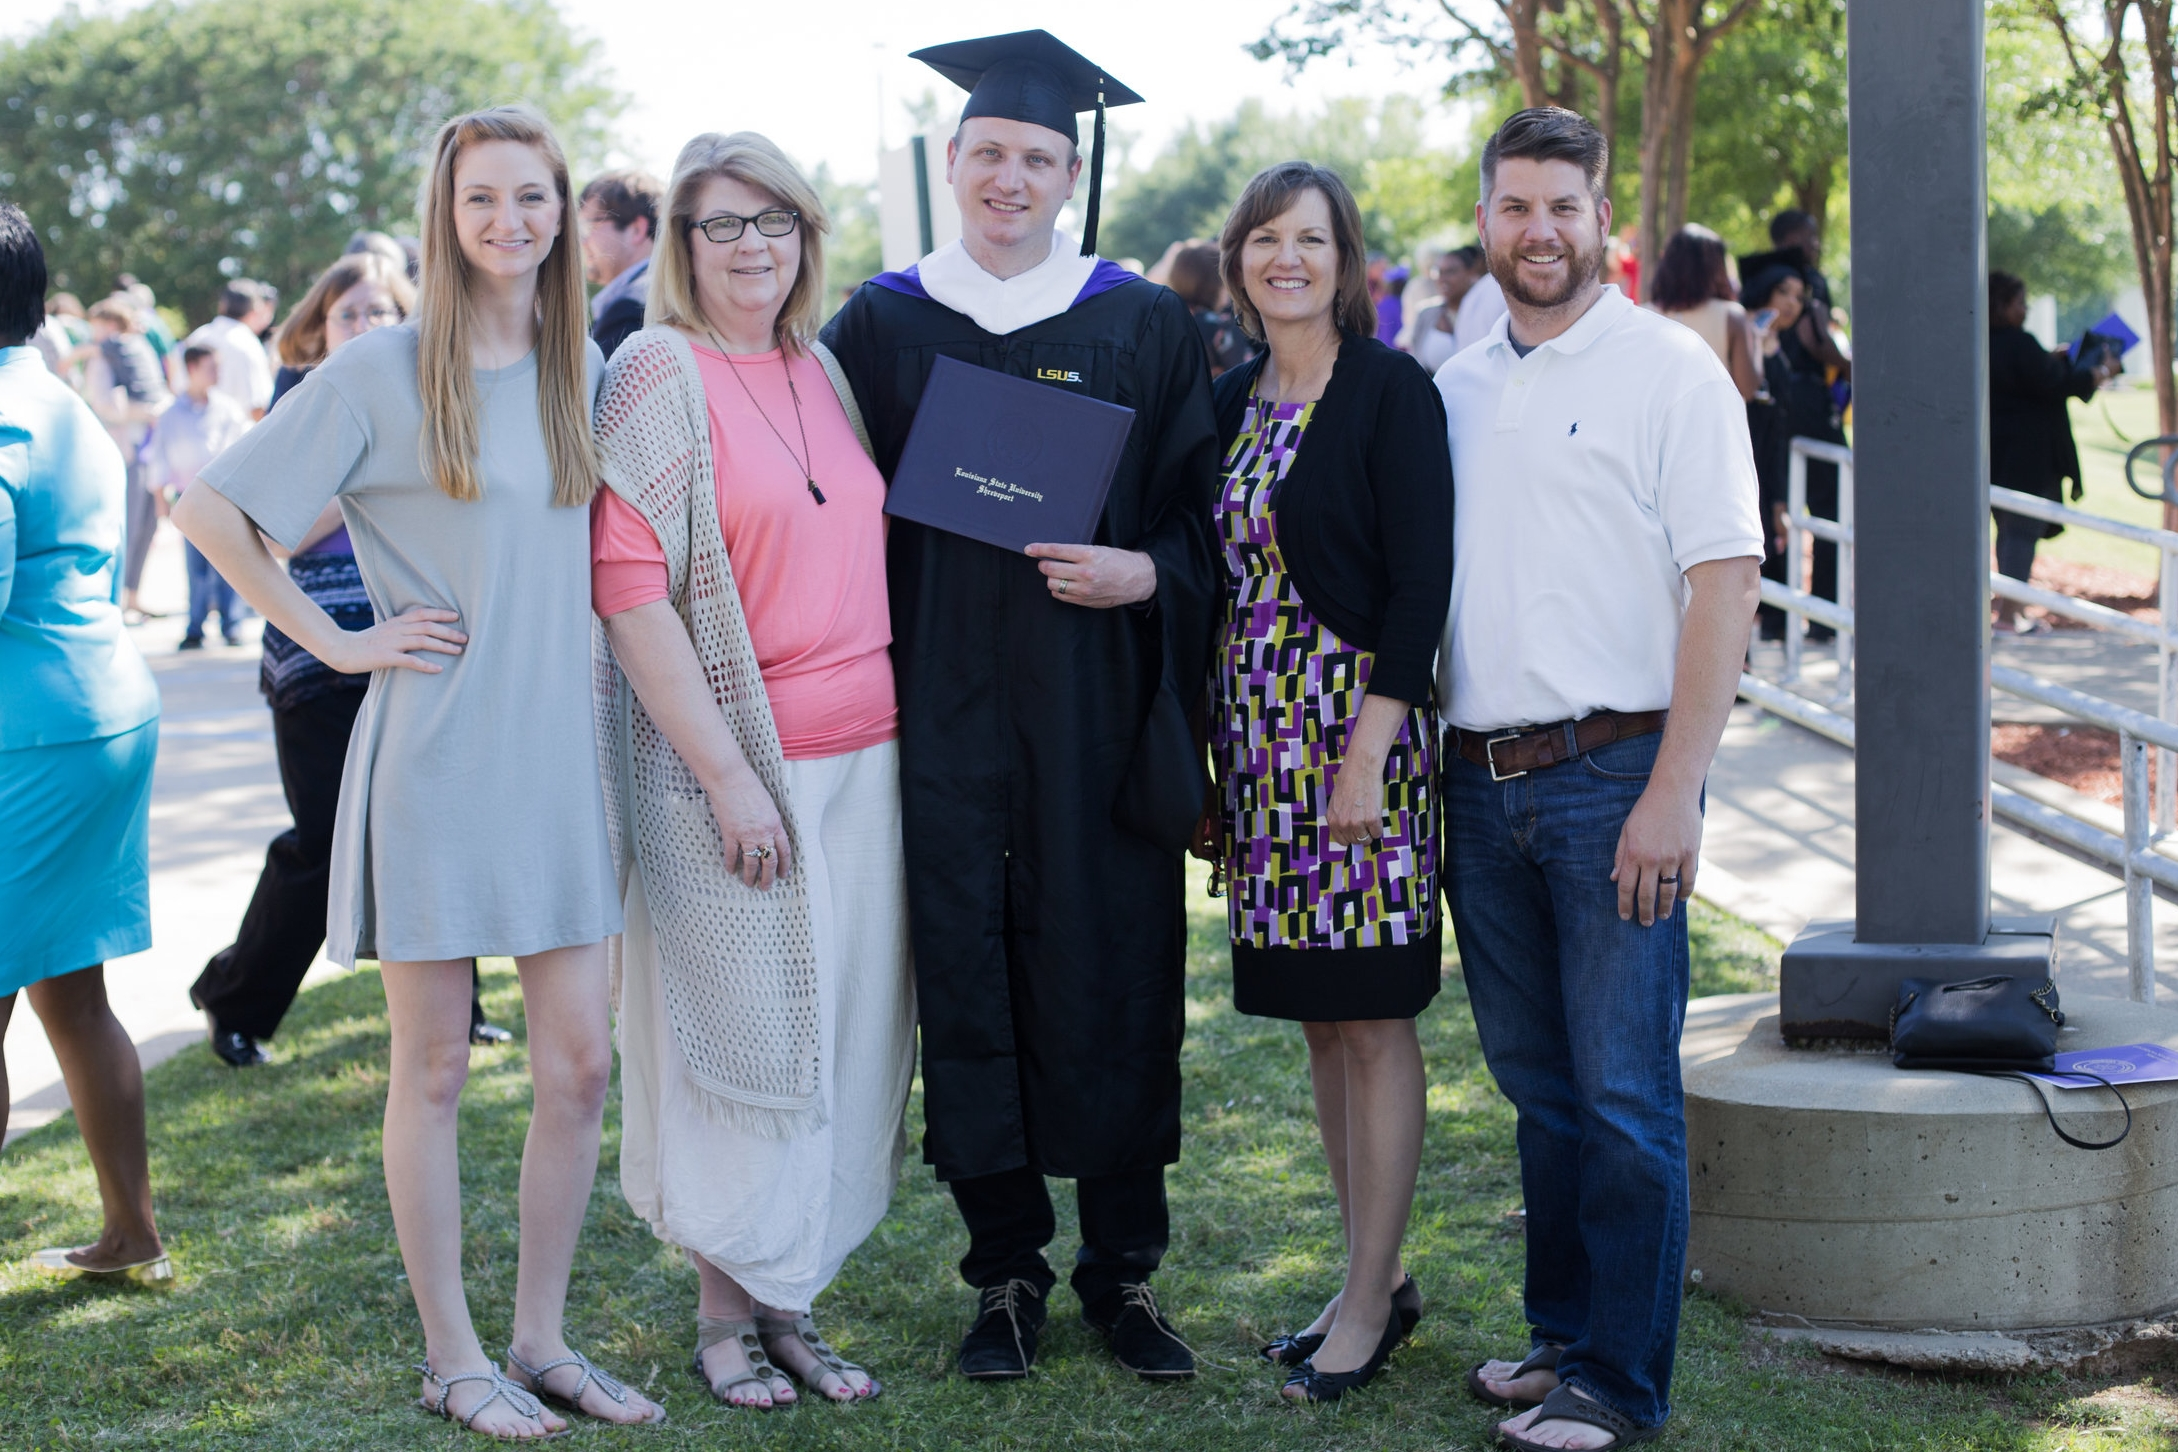 LSUS Grads - All the LSUS Graduates in both our families (the ones that were present at least.)